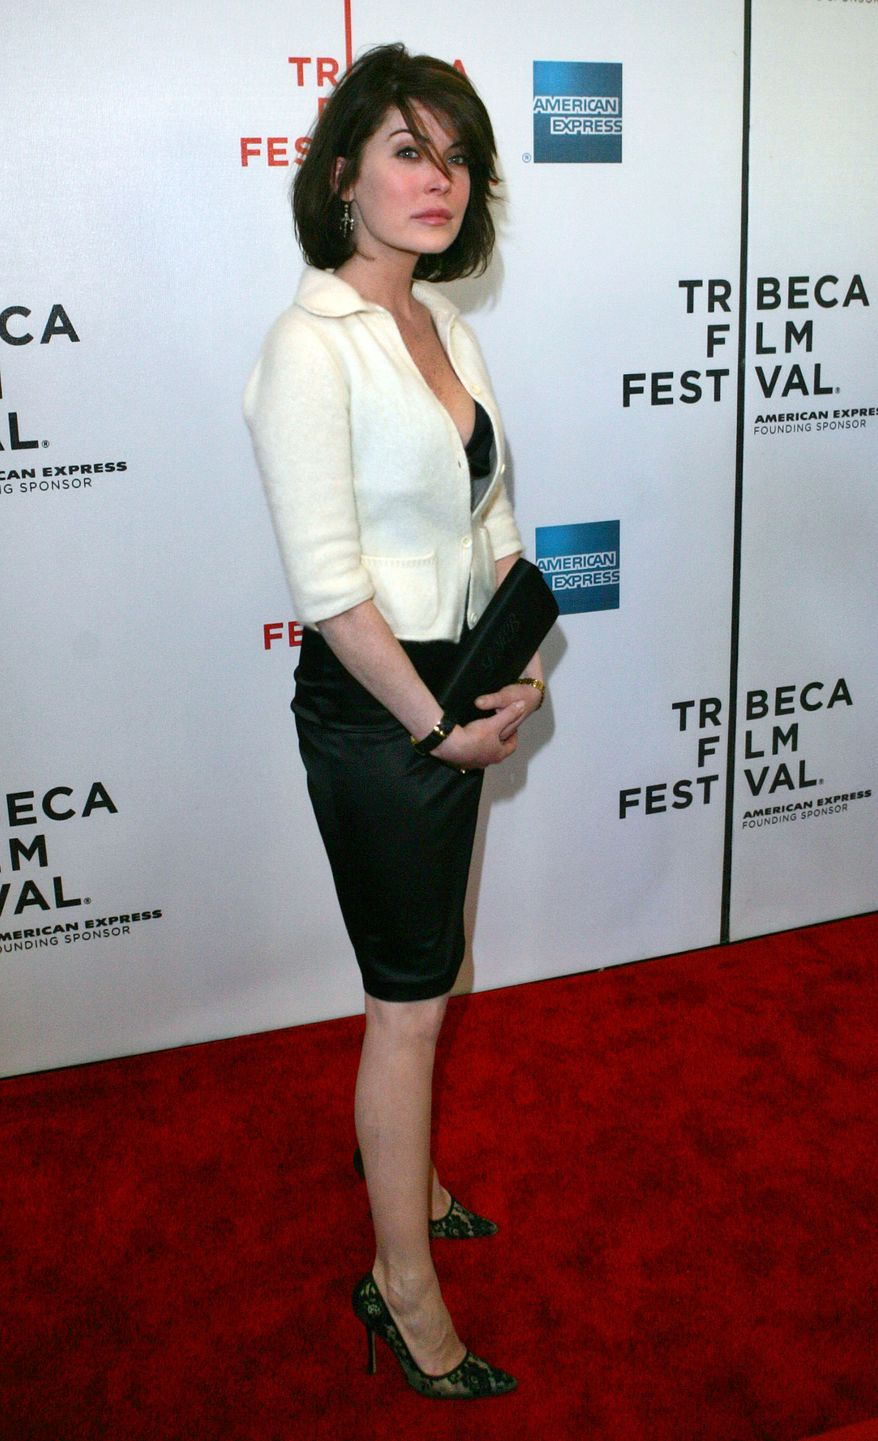 Actress Lara Flynn Boyle, arrives to the special screening of Land of the Blind at the Tribeca Film Festival, Monday, May 1, 2006 in New York.  (AP Photo/Dima Gavrysh)